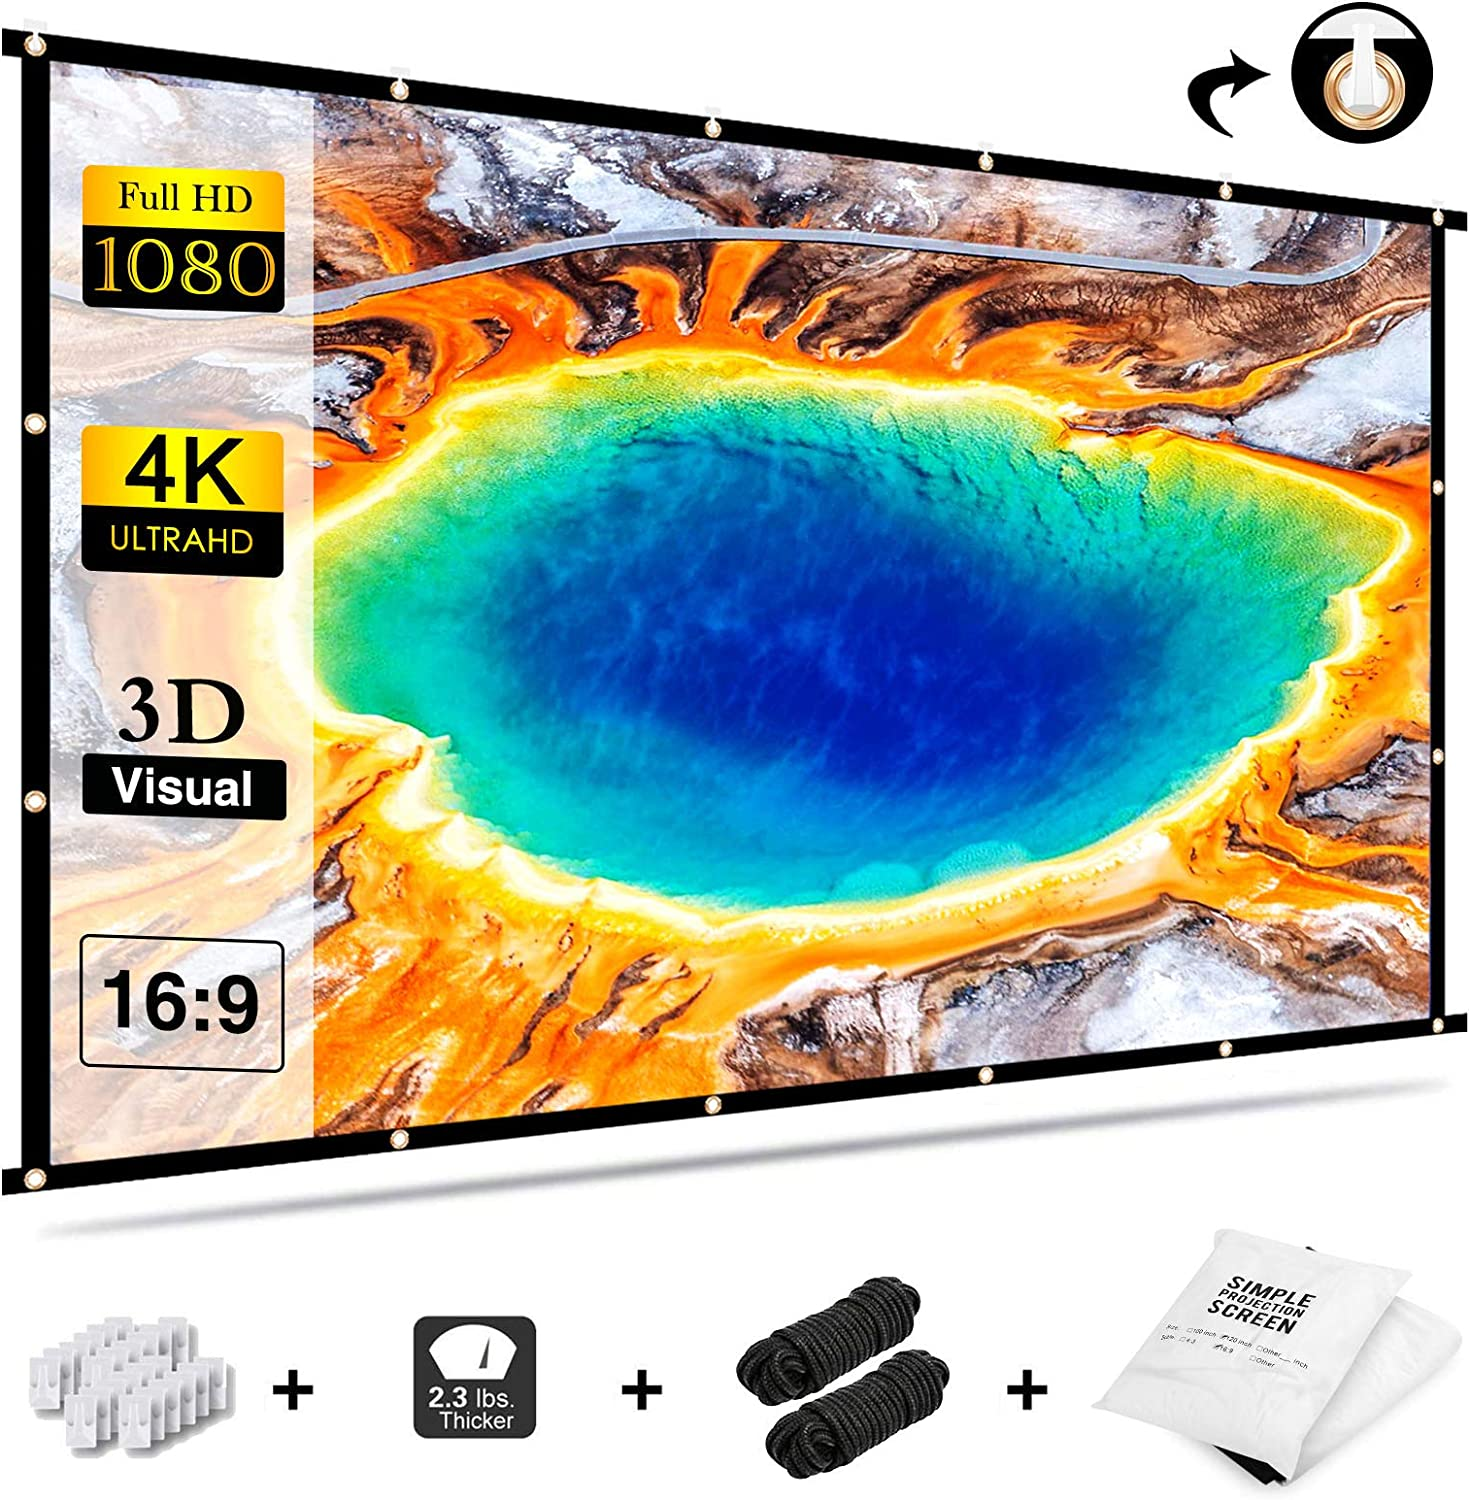 Projector Screen 120 inch, Outdoor Movie Screen 16:9 HD 4K Foldable Anti-Crease Portable Video Projection Screen Double Sided for Home Theater Indoor Meeting Backyard and Public Display